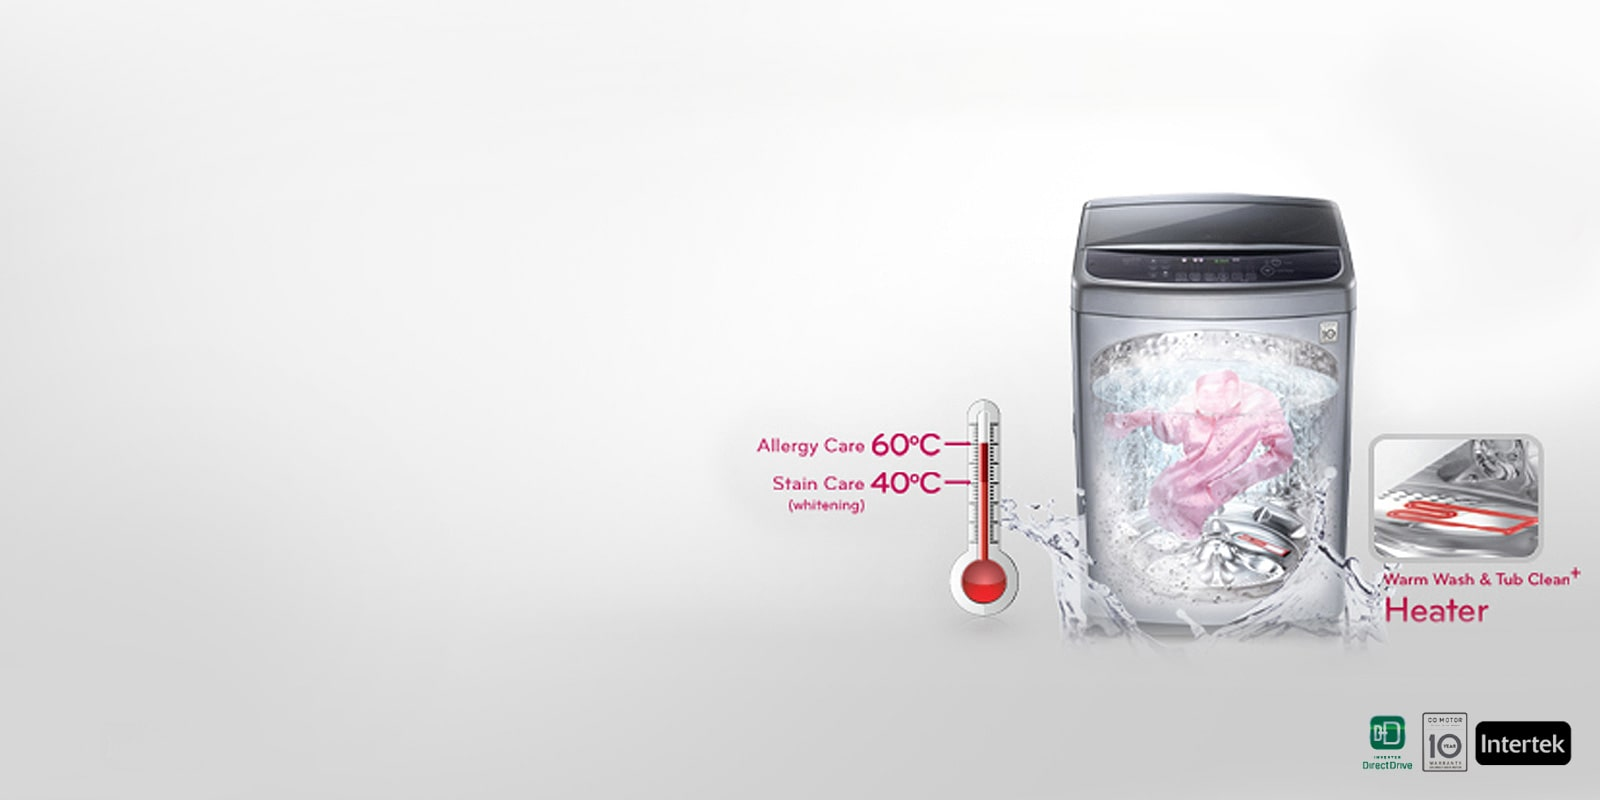 LG Hygienic Washing Machine